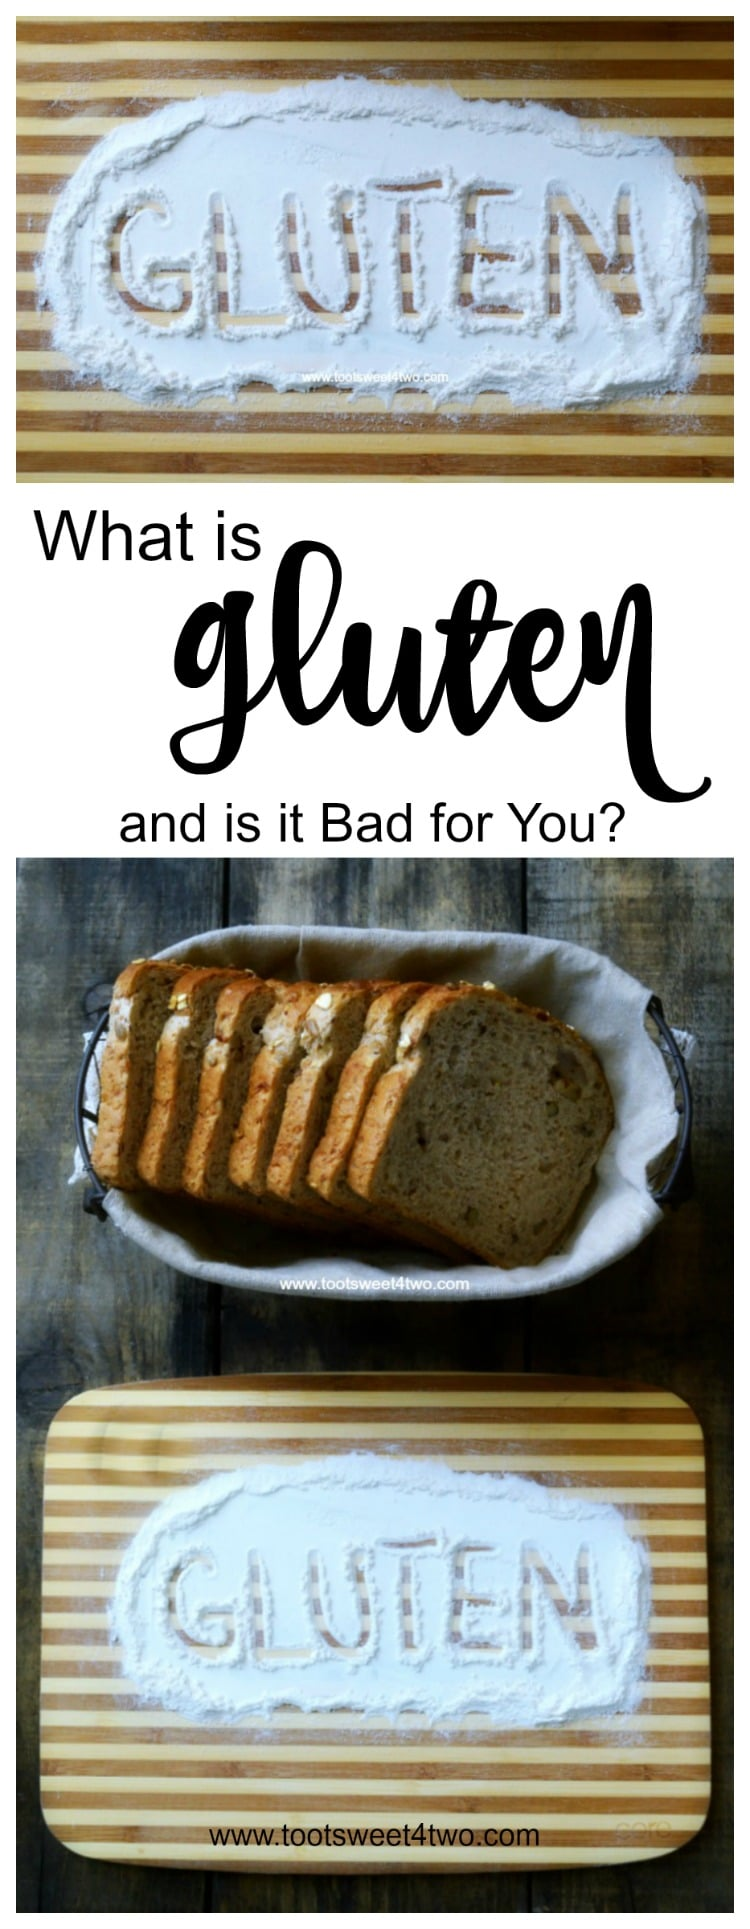 What is gluten and is it bad for you? A protein found in rye, barley, grains and wheat, many people are unaware that they have a gluten intolerance or sensitivity until symptoms appear. Is a gluten free diet beneficial? Eliminating gluten from your diet might sound easy but today's pre-packaged foods and restaurant meals present a challenge.   www.tootsweet4two.com